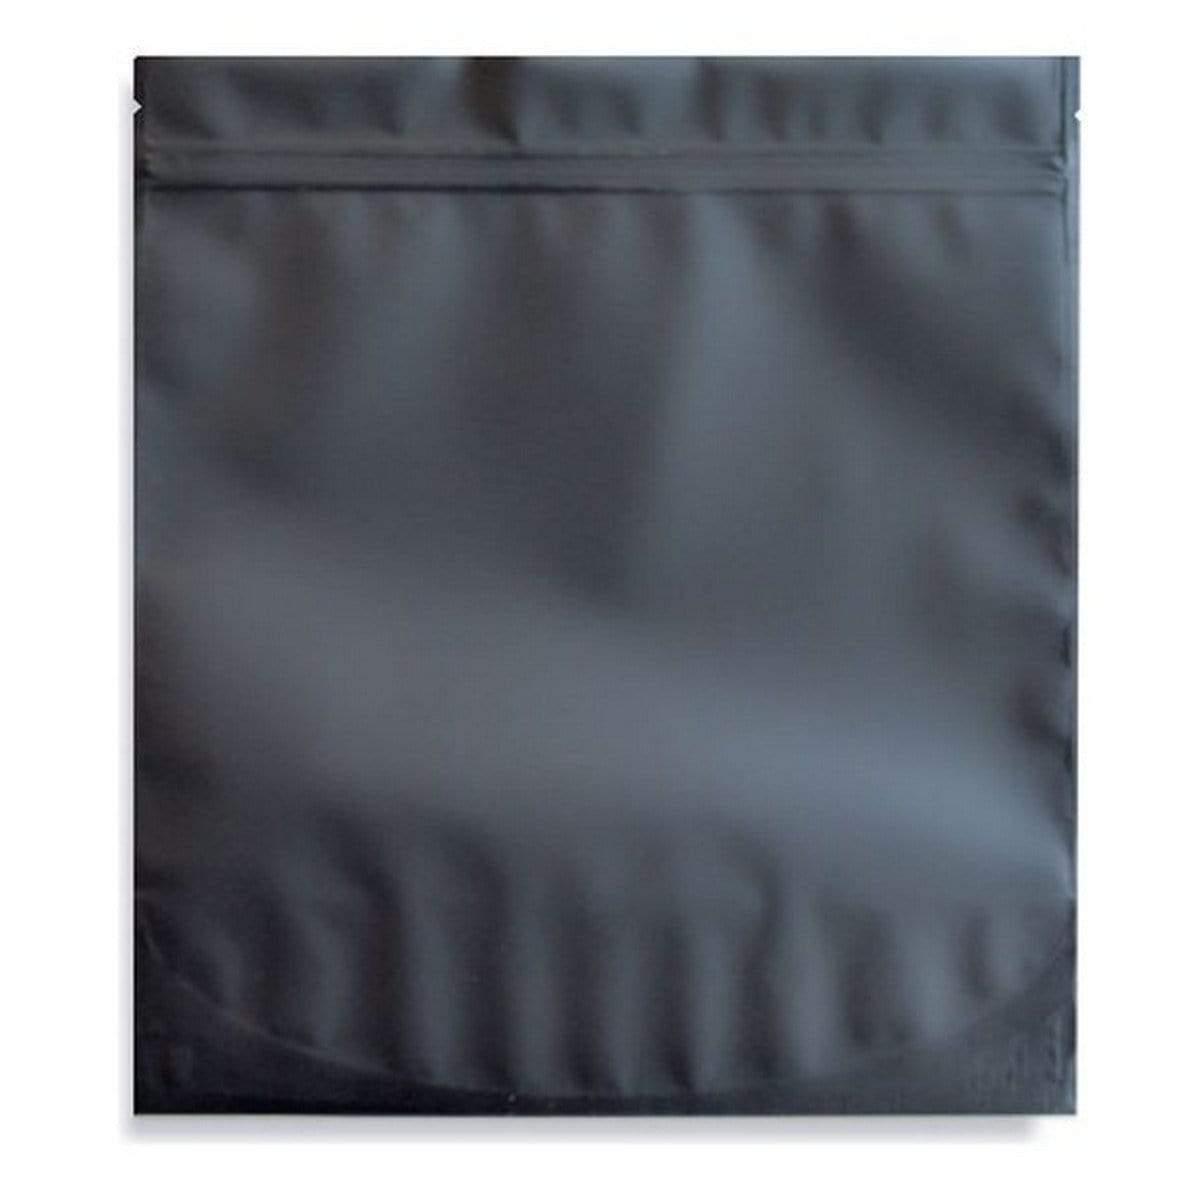 Smell Proof Mylar (1 lb) Pound Bag Matte Black